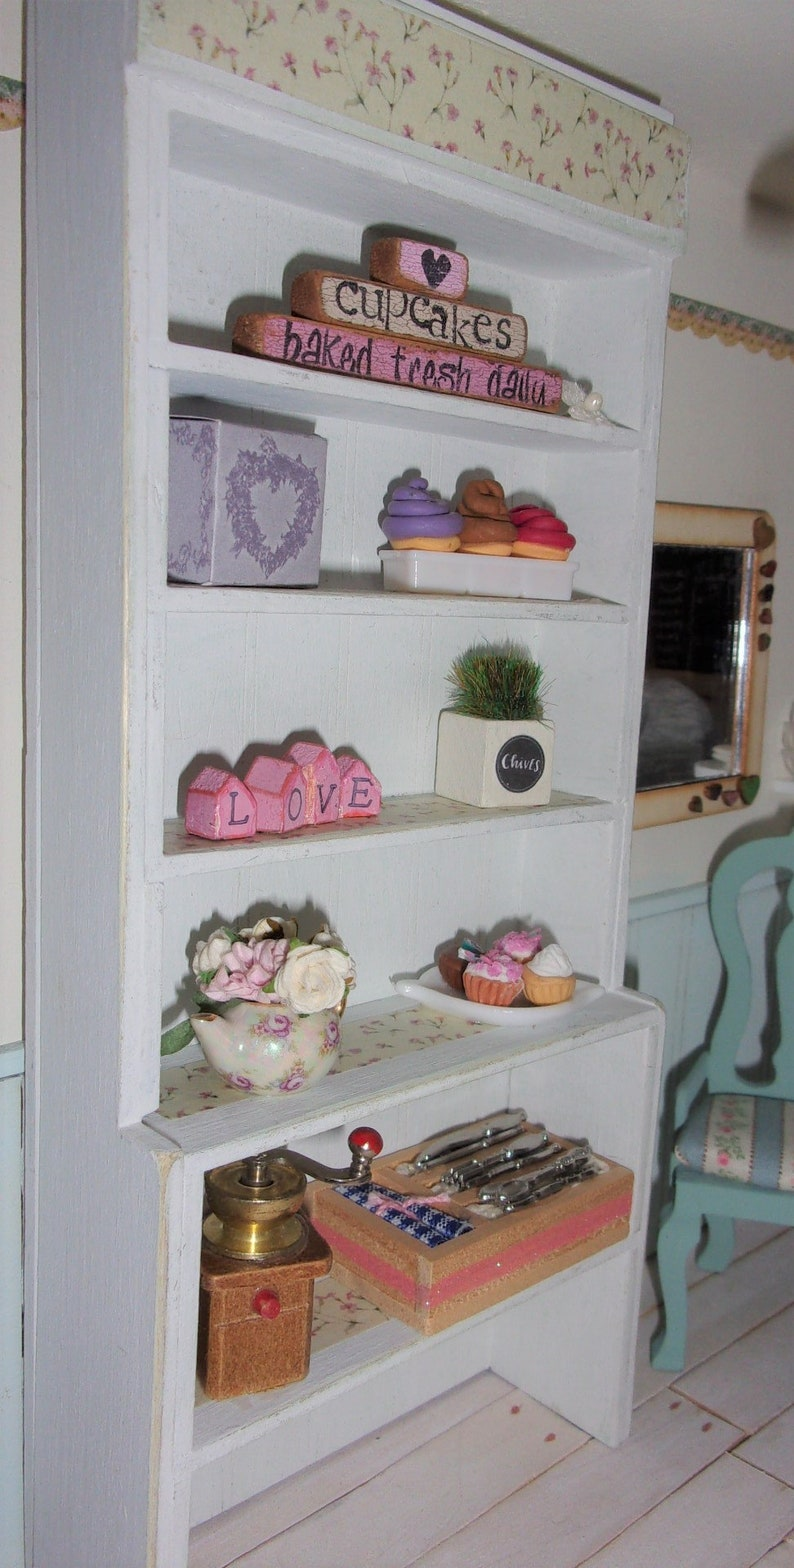 Dolls House 1:12th Cake Shop Display image 0